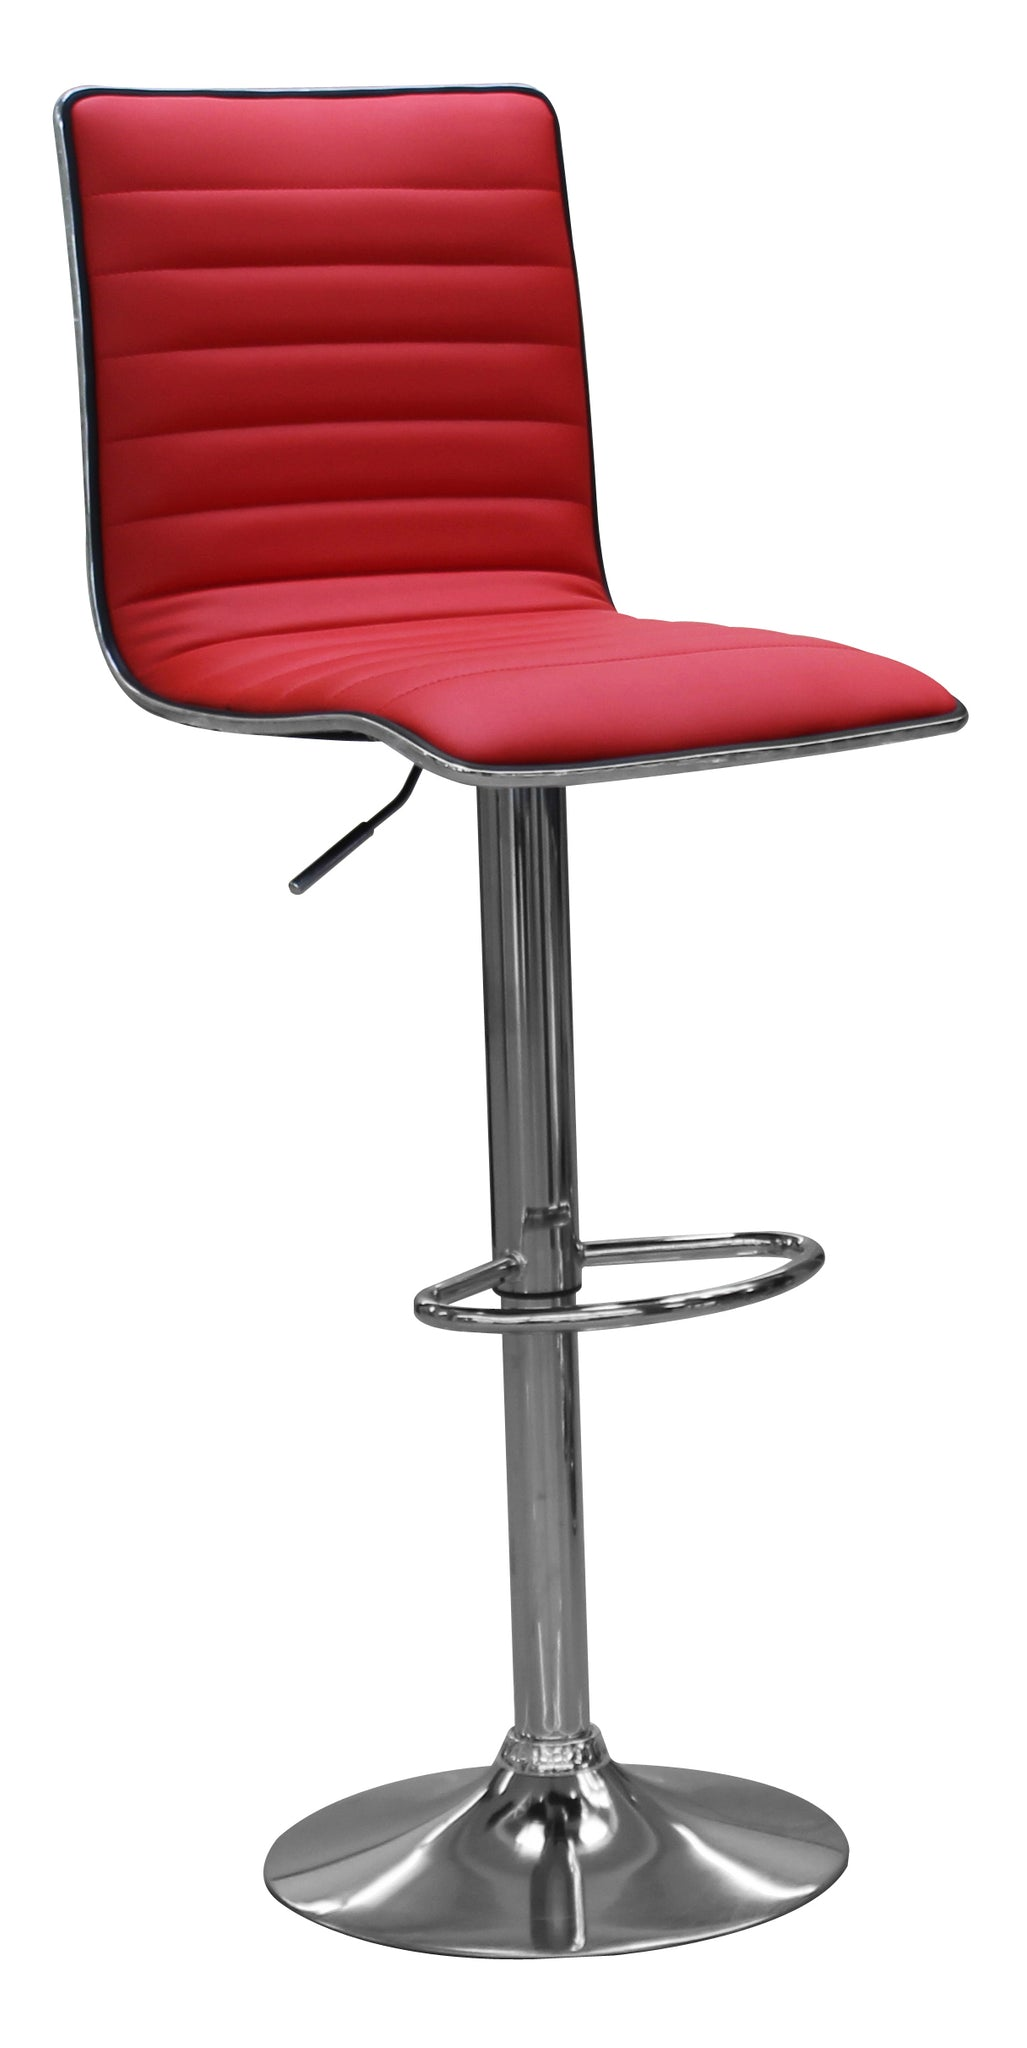 Urban Decor  San Diego Bar Stool Chrome Frame